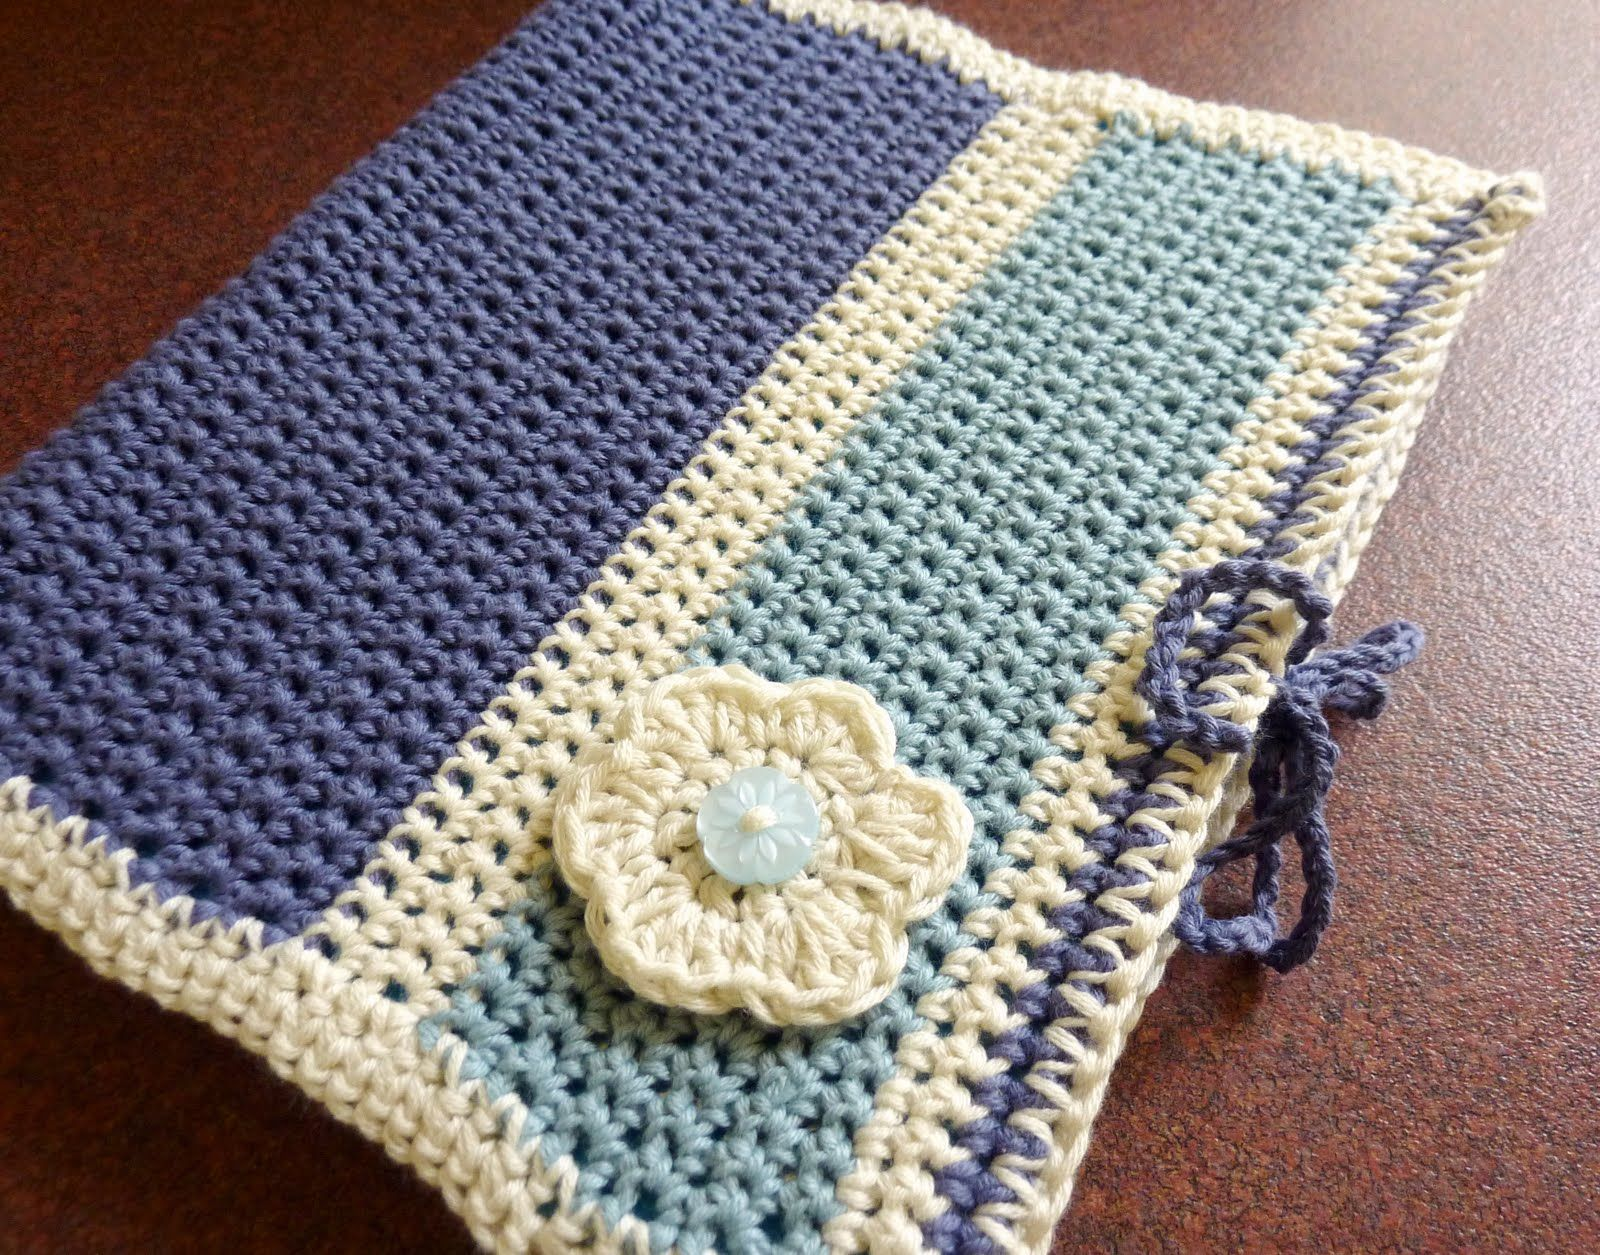 crochet book cover pattern free | Crochet Bible Cover Patterns ...